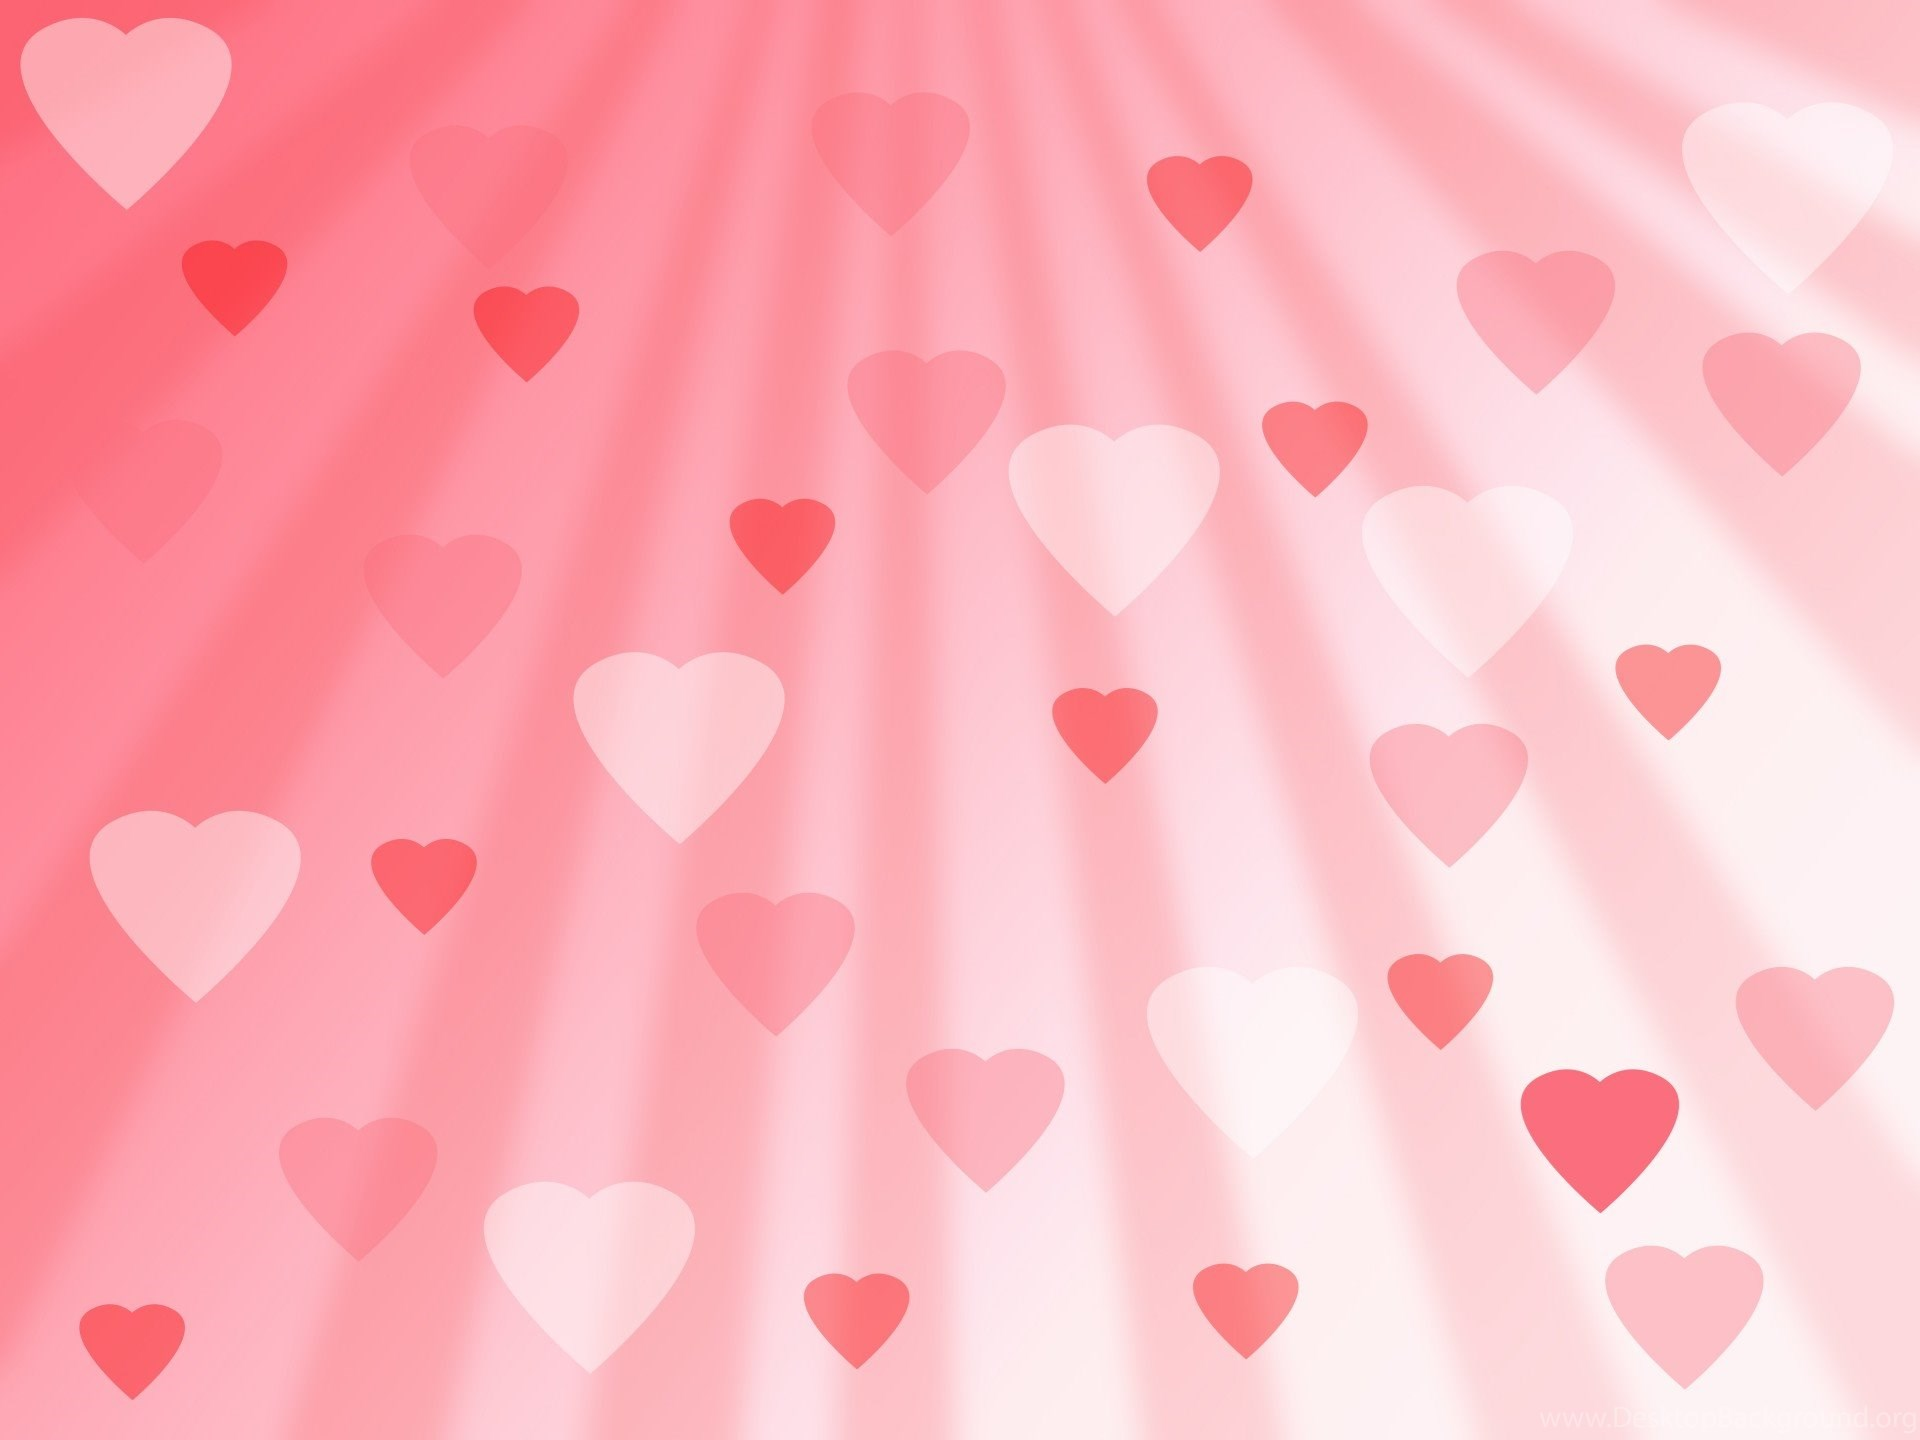 Pink Heart Backgrounds Free Stock Photo Public Domain